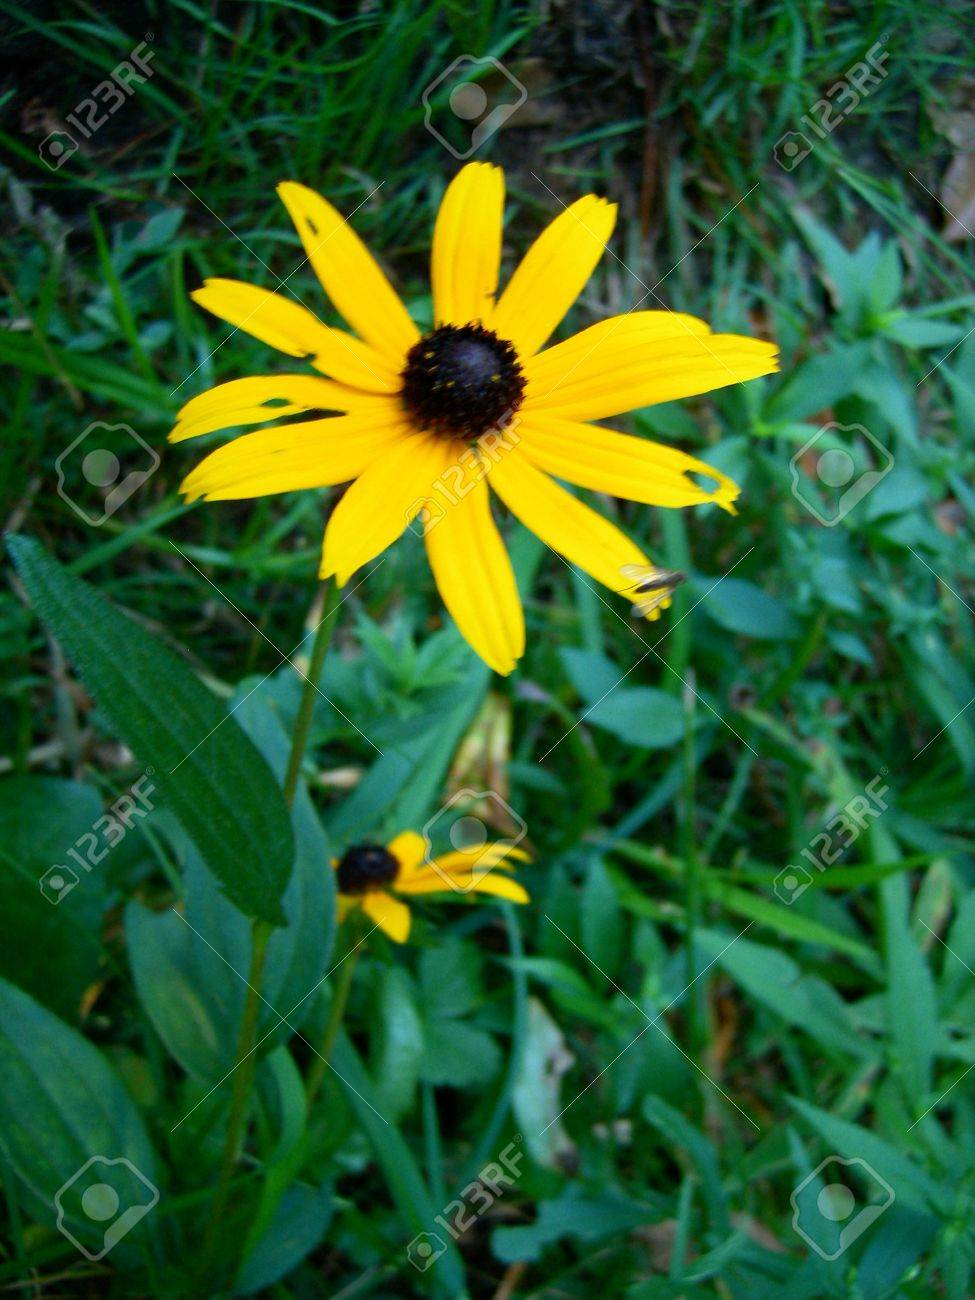 Black Eyed Susan Flowers Yellow Daisy Like Flowers With A Dark